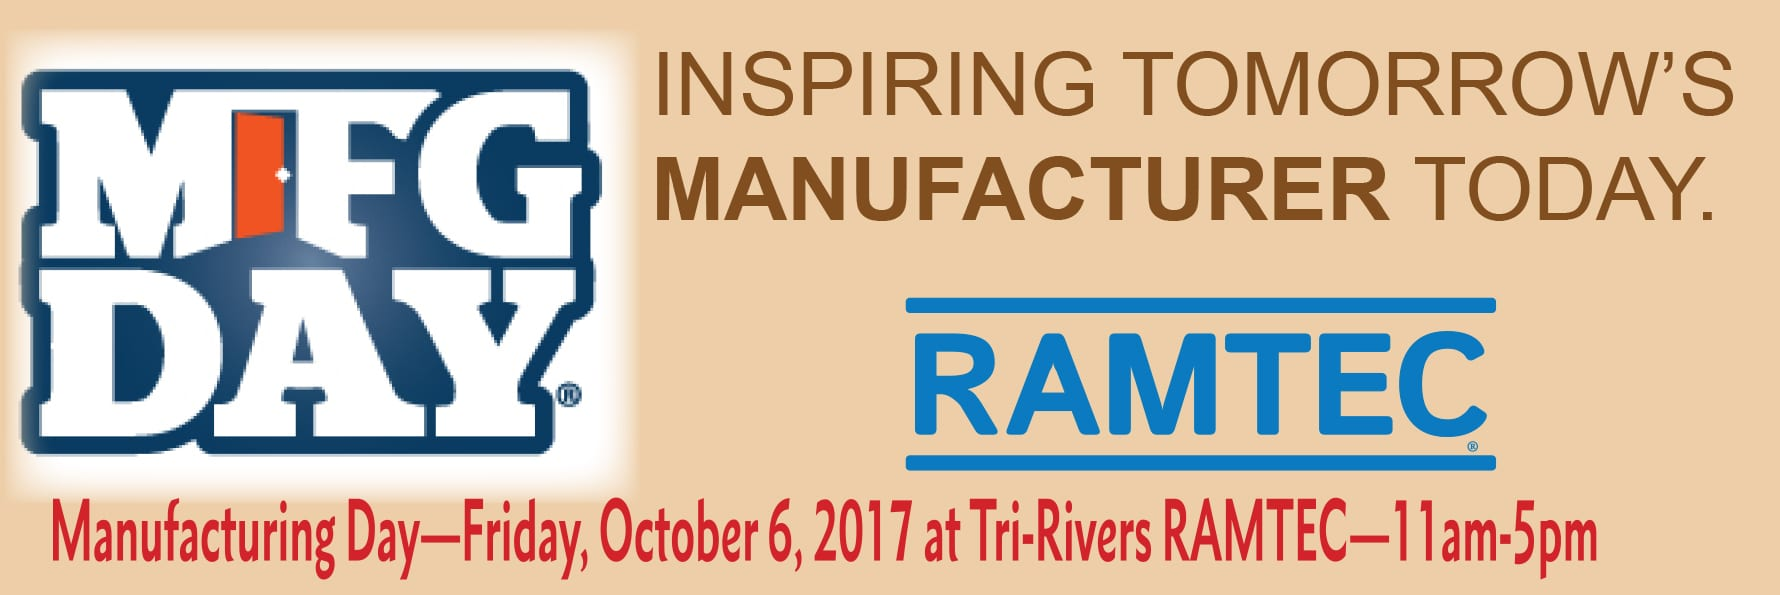 Media Alerts Archives - Page 4 of 17 - Ramtec of Ohio